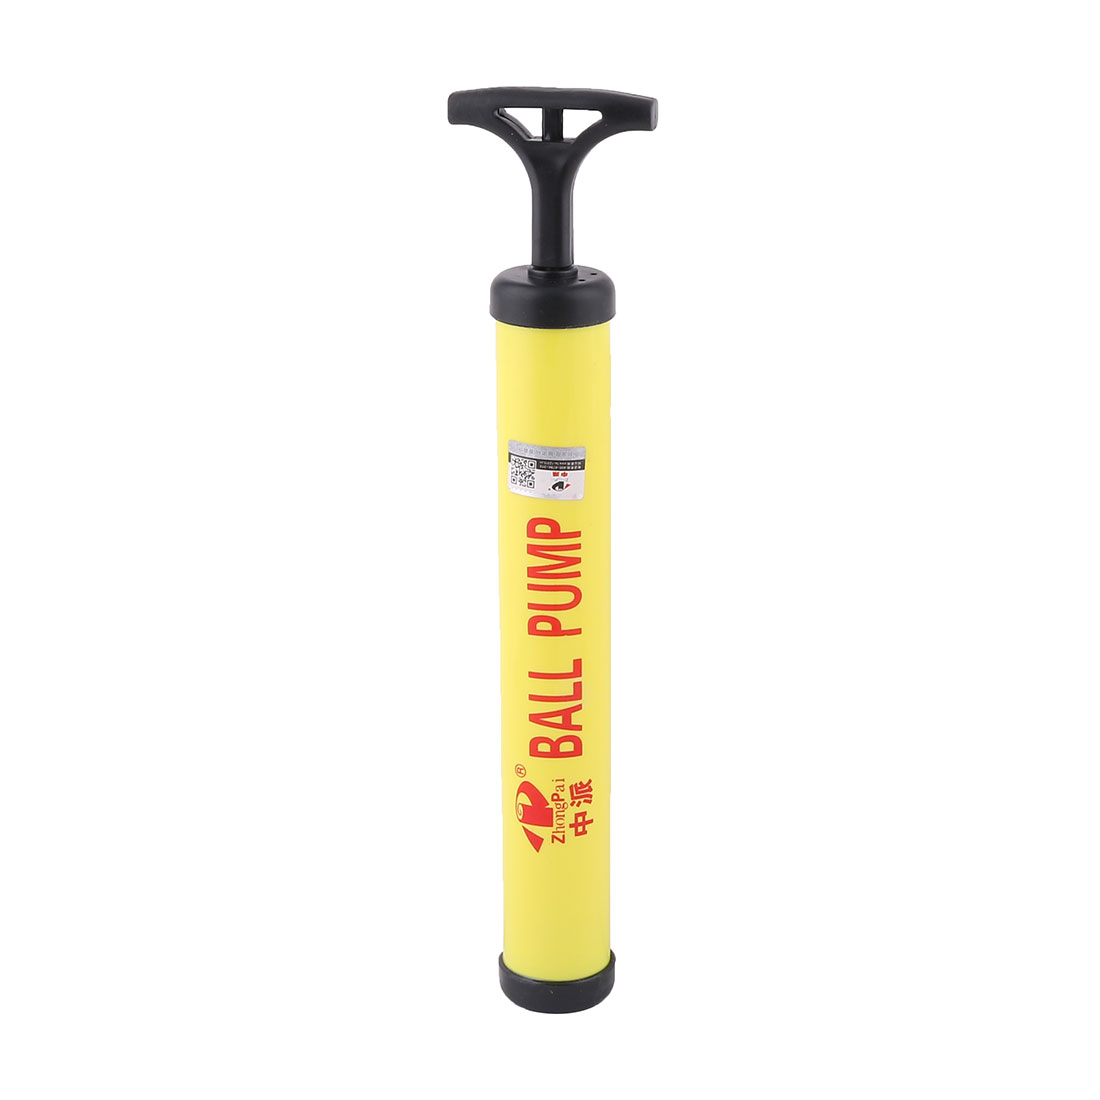 Housing Plastic Volleyball Basketball Hand Air Pump Inflator Yellow Black